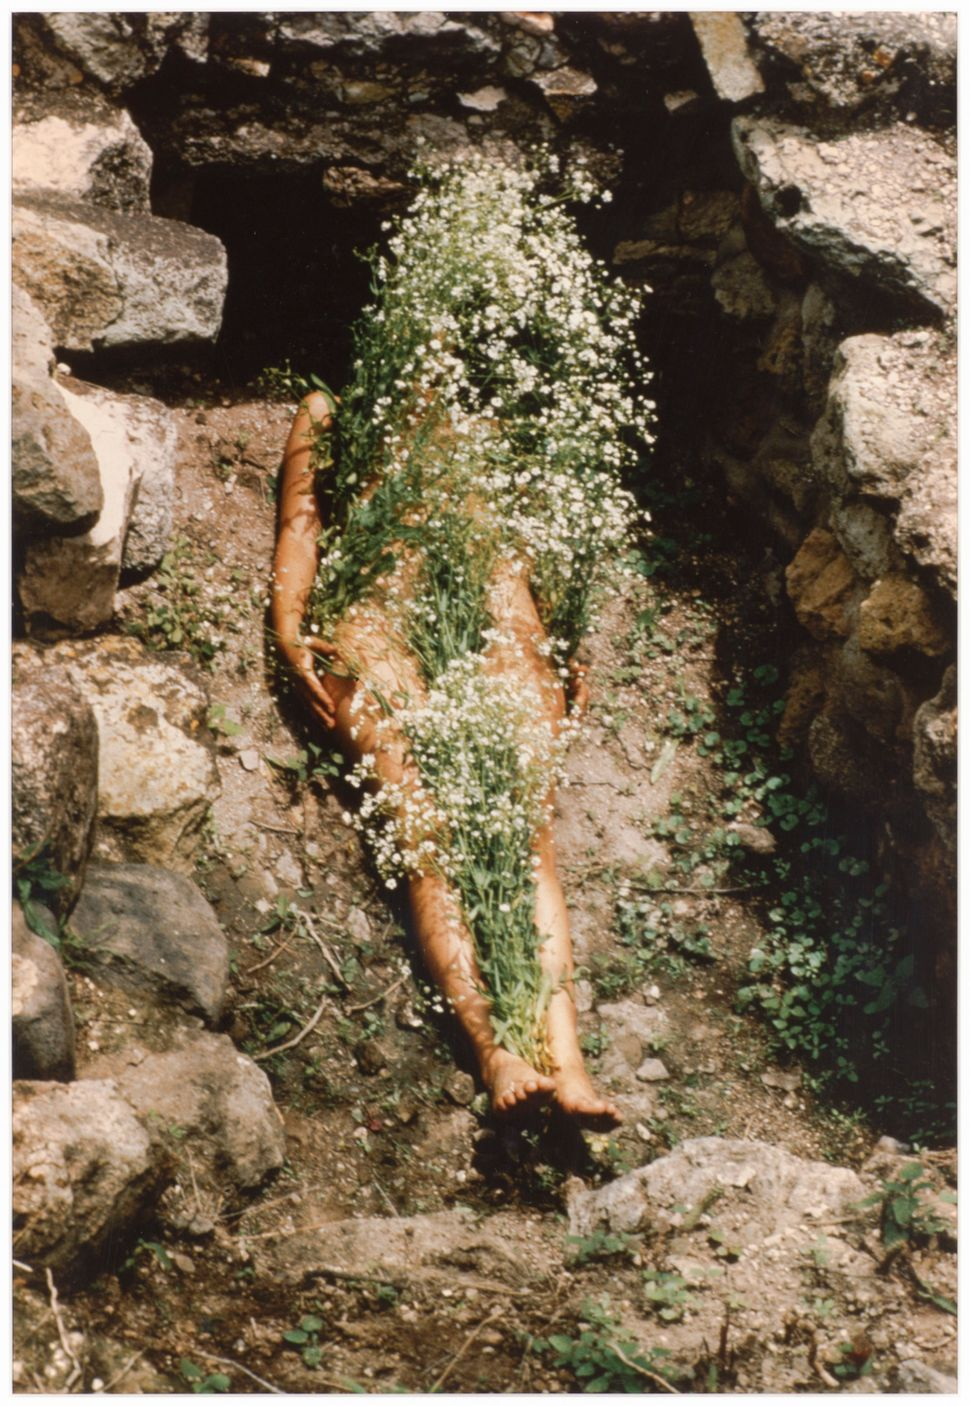 Ana Mendieta, Untitled (from the Silueta series), 1973-77. Collection Museum of Contemporary Art Chicago, gift from The Howar